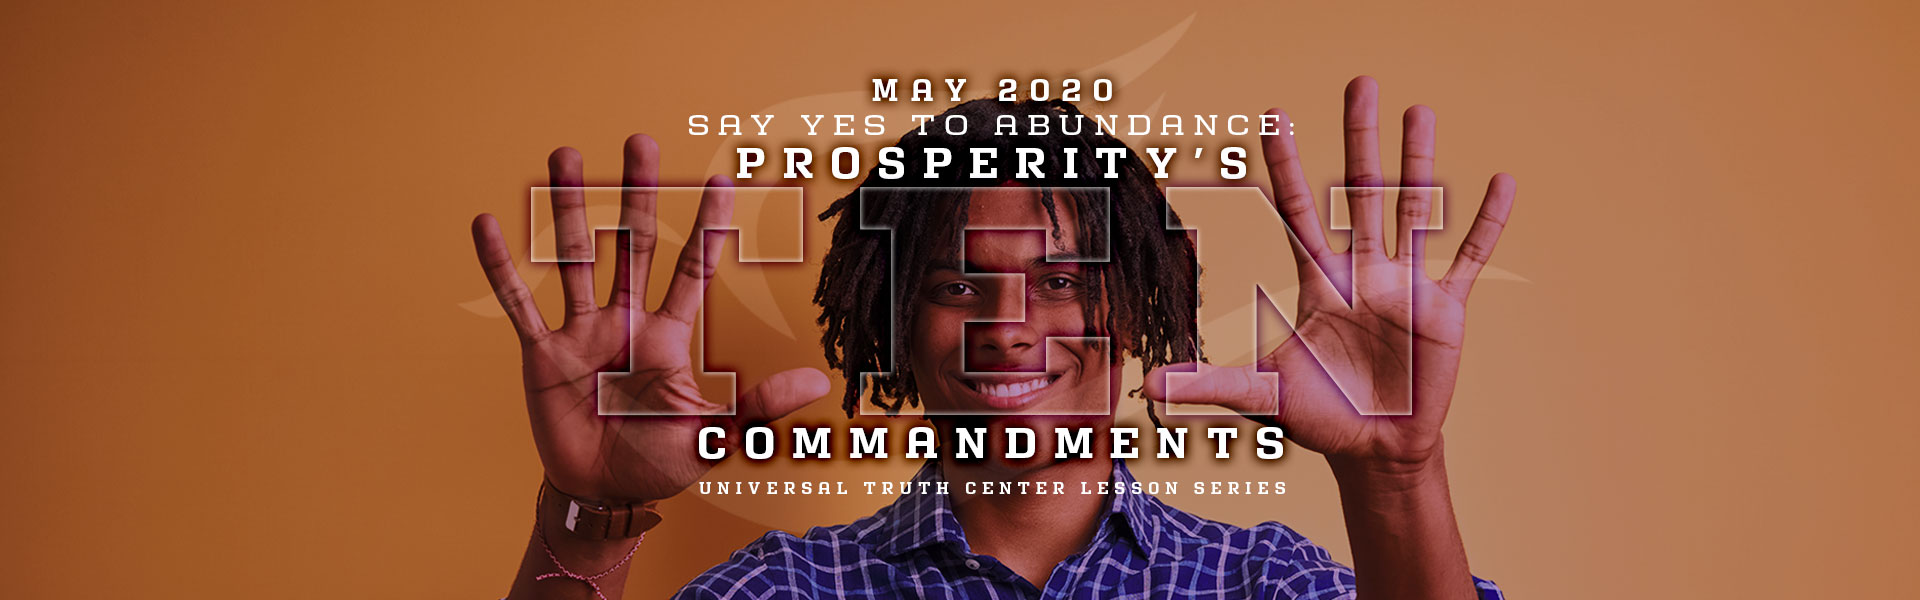 U T C prosperity's 10 commandments lesson series banner